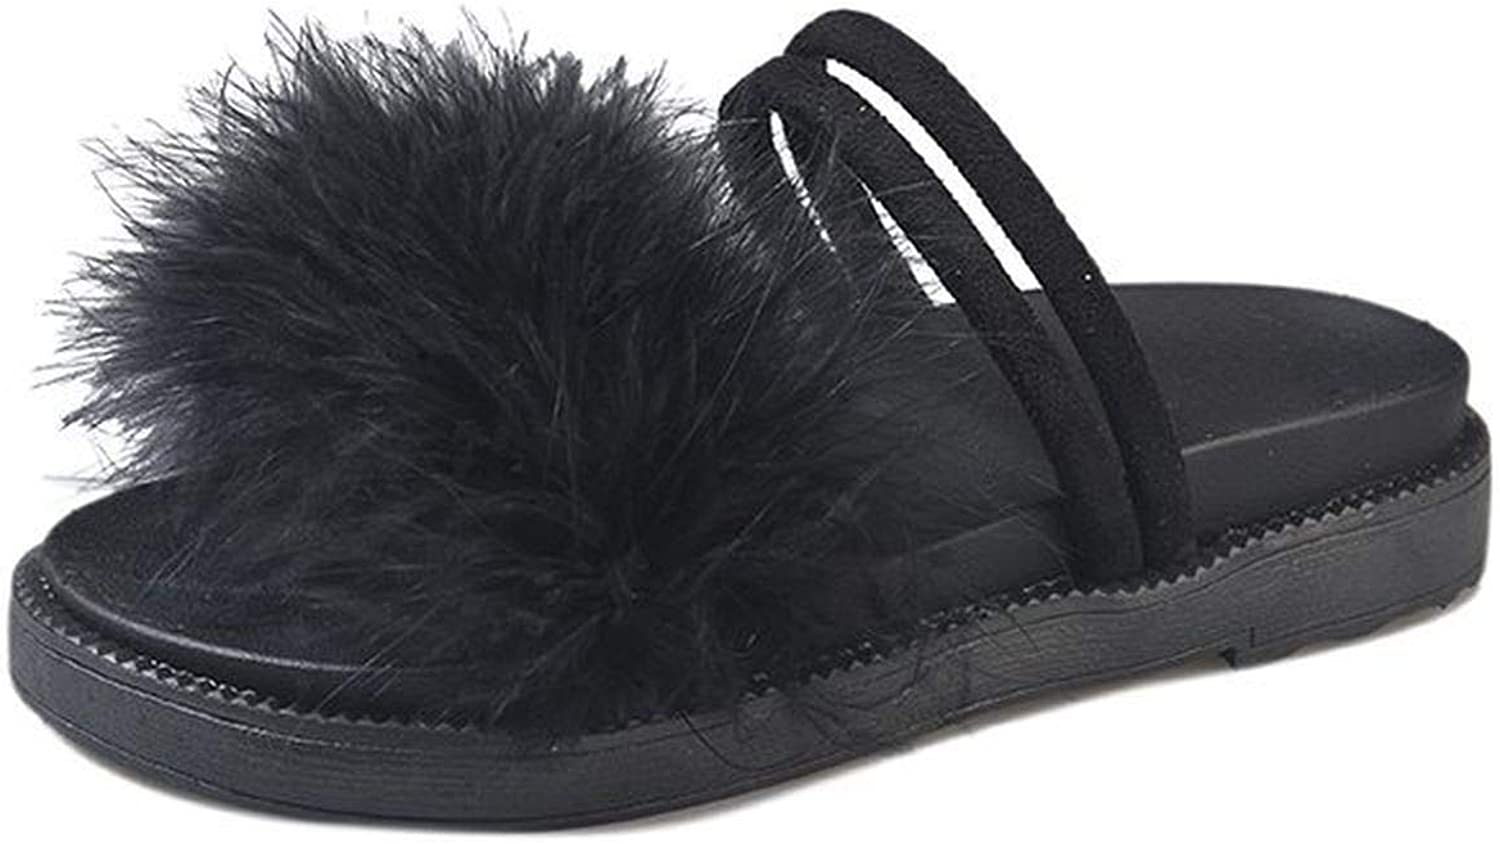 Huntty Luxury Fur Hair Sexy Lady Outside Slipper 2019 Summer Vacation Beach Sandals Thick Sole Platform Student Casual shoes